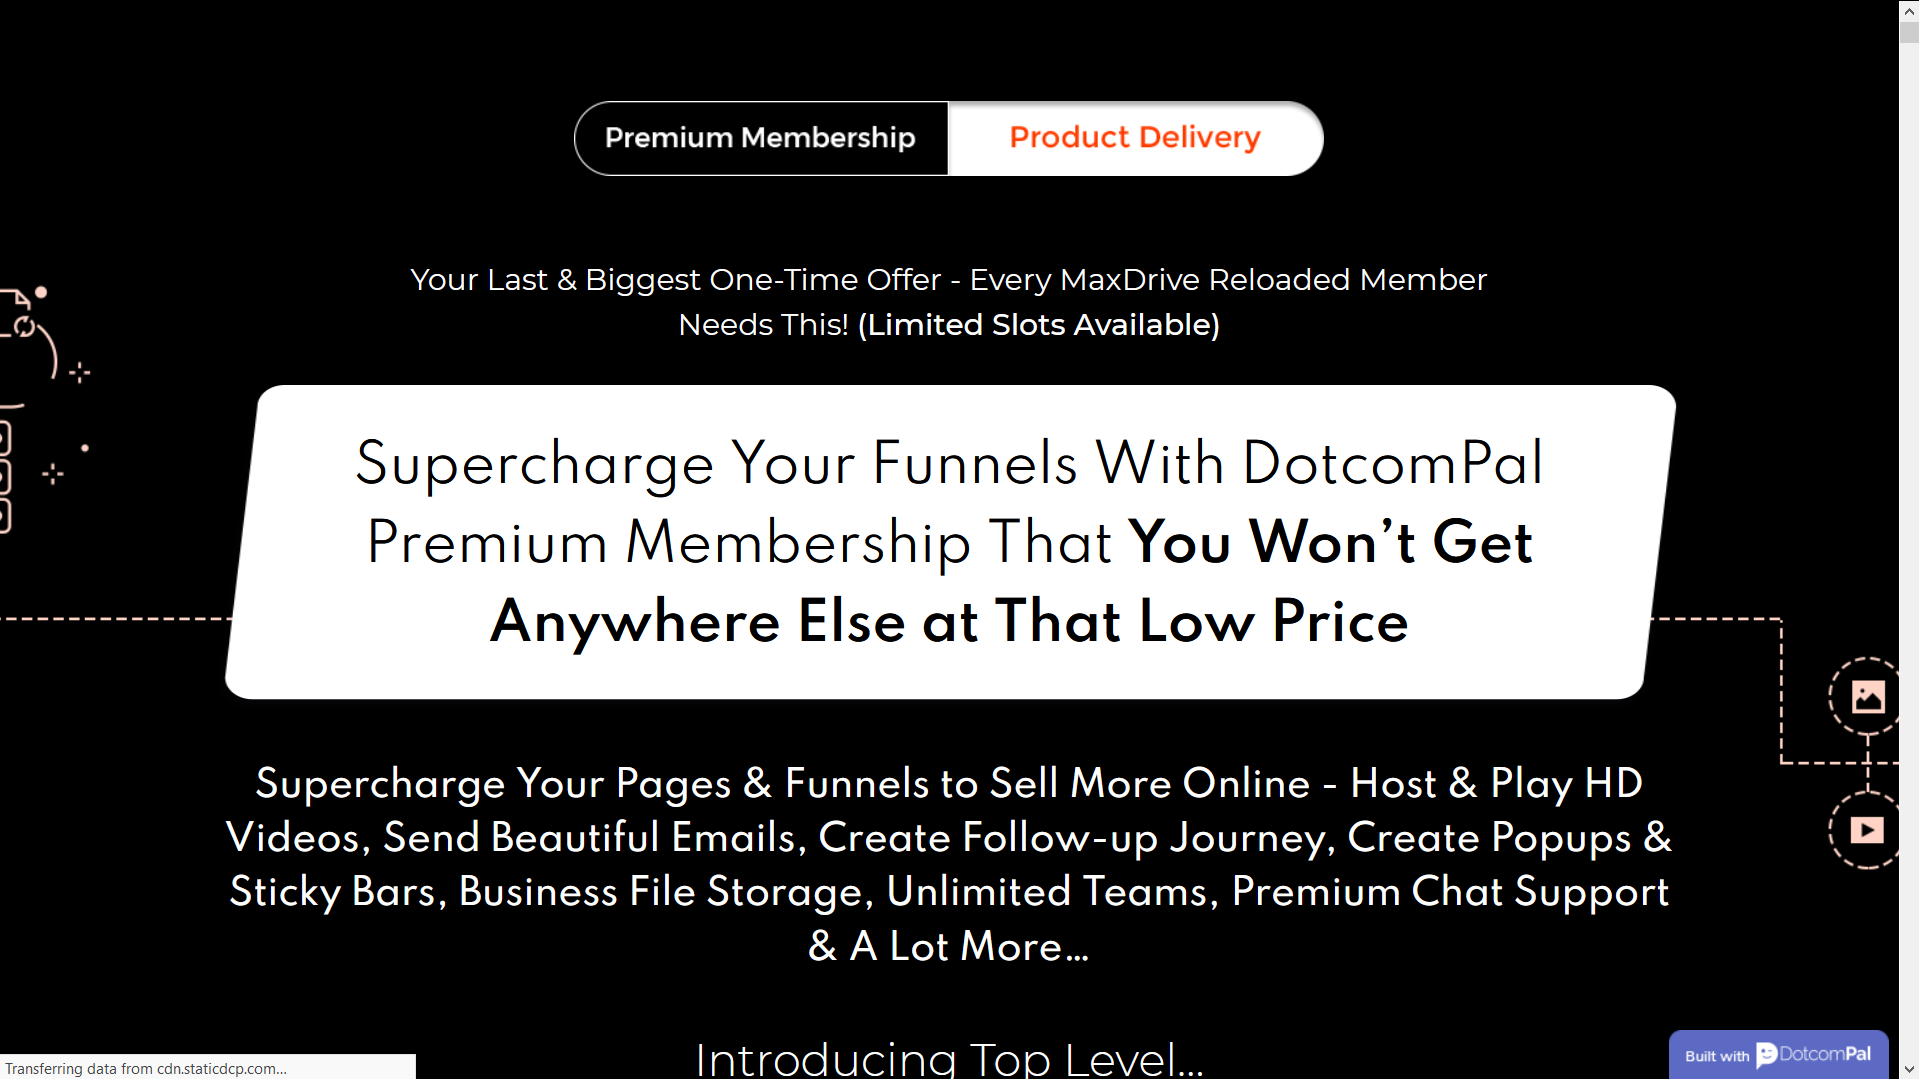 Pin By Newbusiness On Marketing Traffic Source In 2020 Marketing Goals Email Campaign Premium Membership